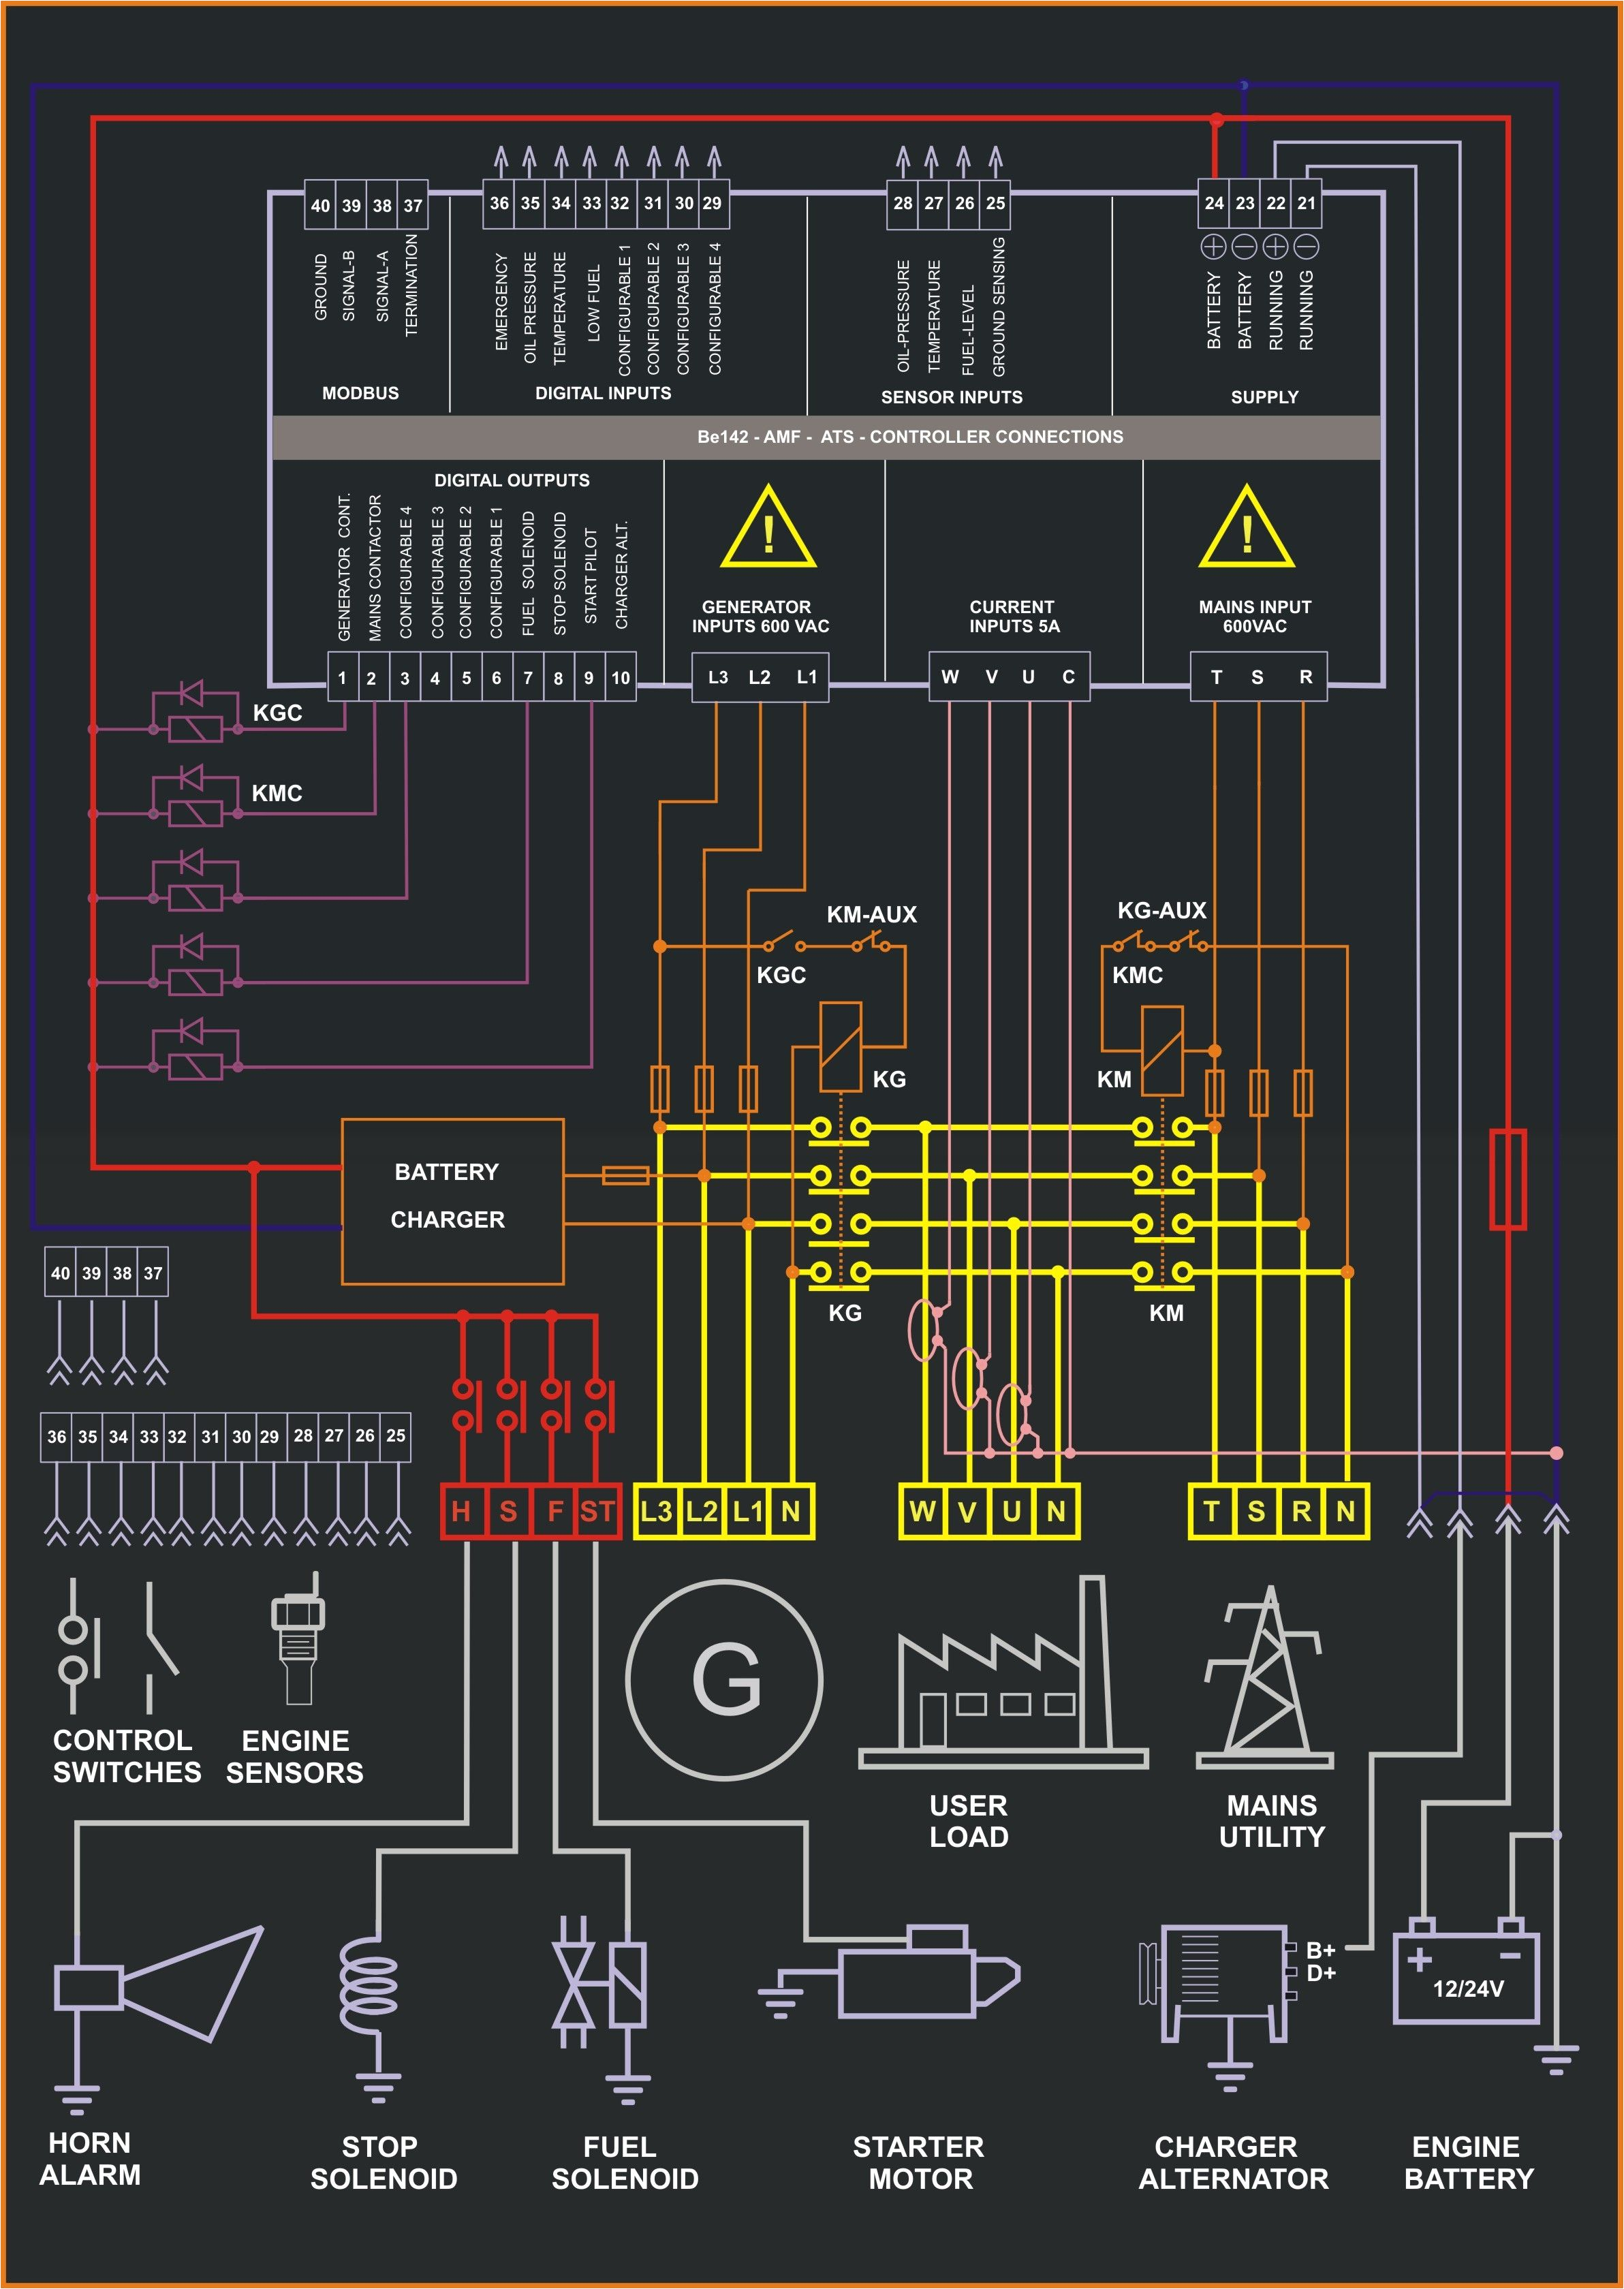 electrical panel board wiring diagram pdf fresh 41 awesome circuit electrical control panel wiring diagram pdf control wiring diagram pdf